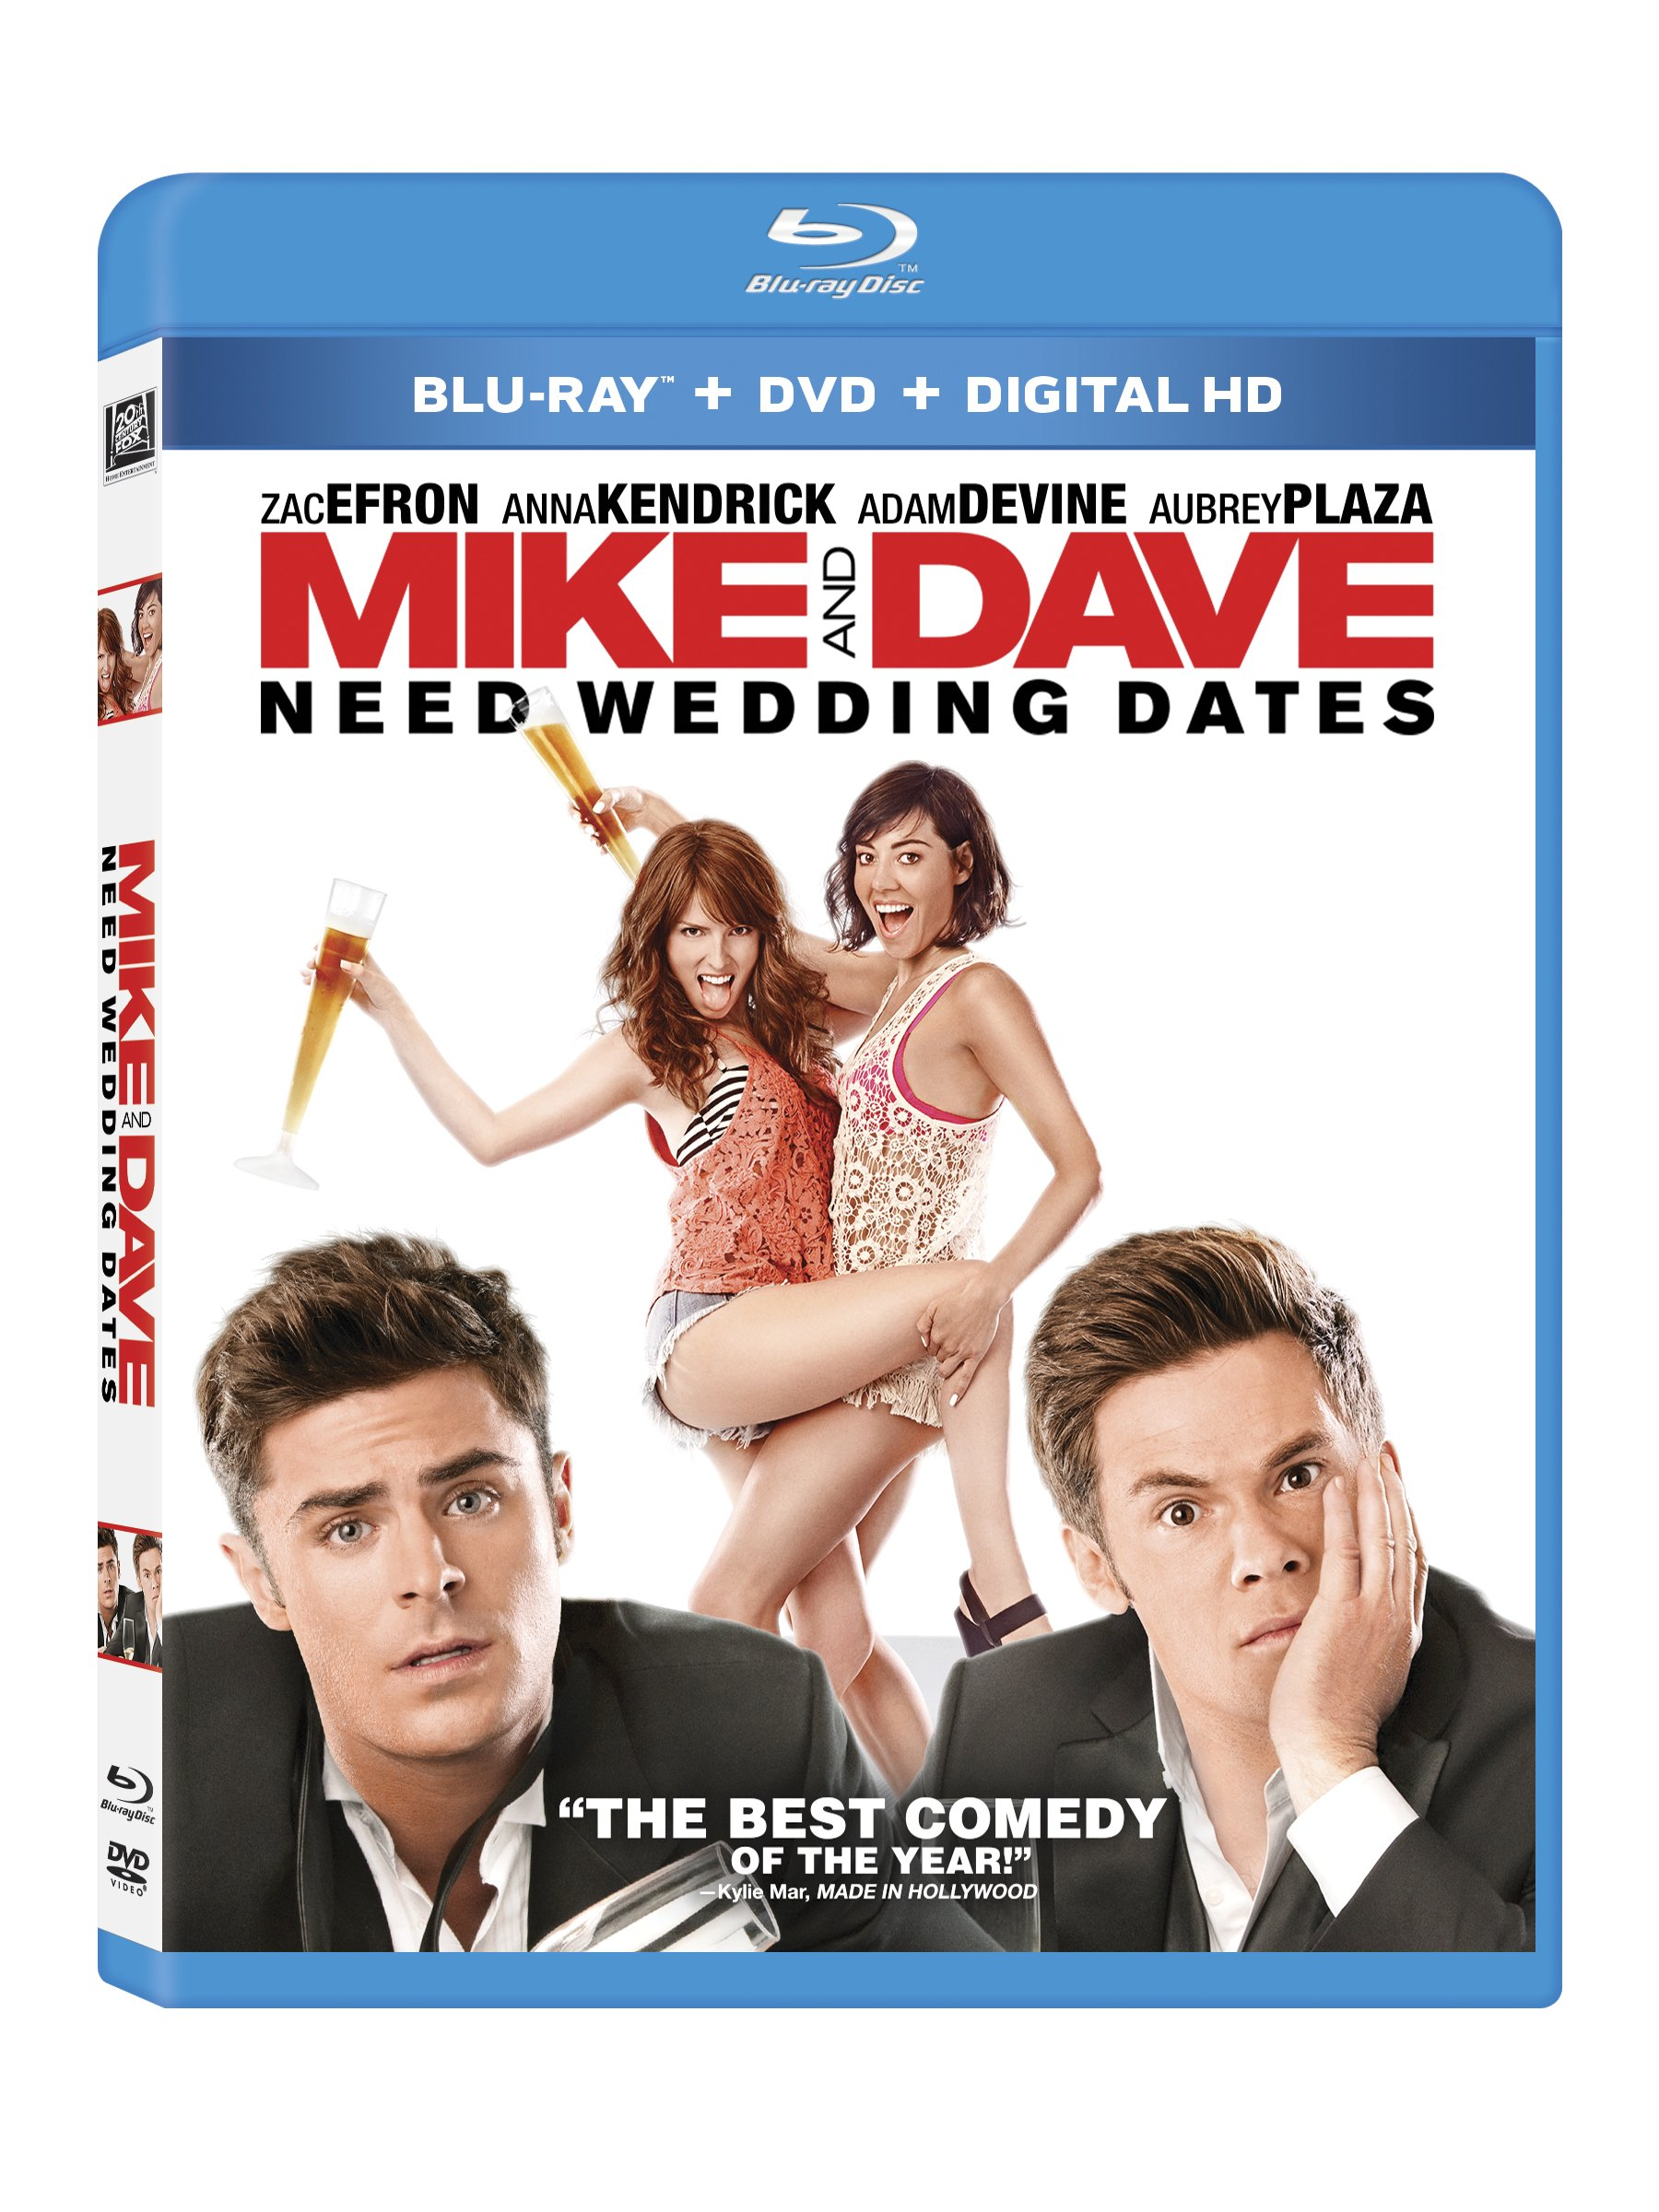 Blu-ray : Mike And Dave Need Wedding Dates (With DVD, Digitally Mastered in HD, 2 Pack, 2 Disc)